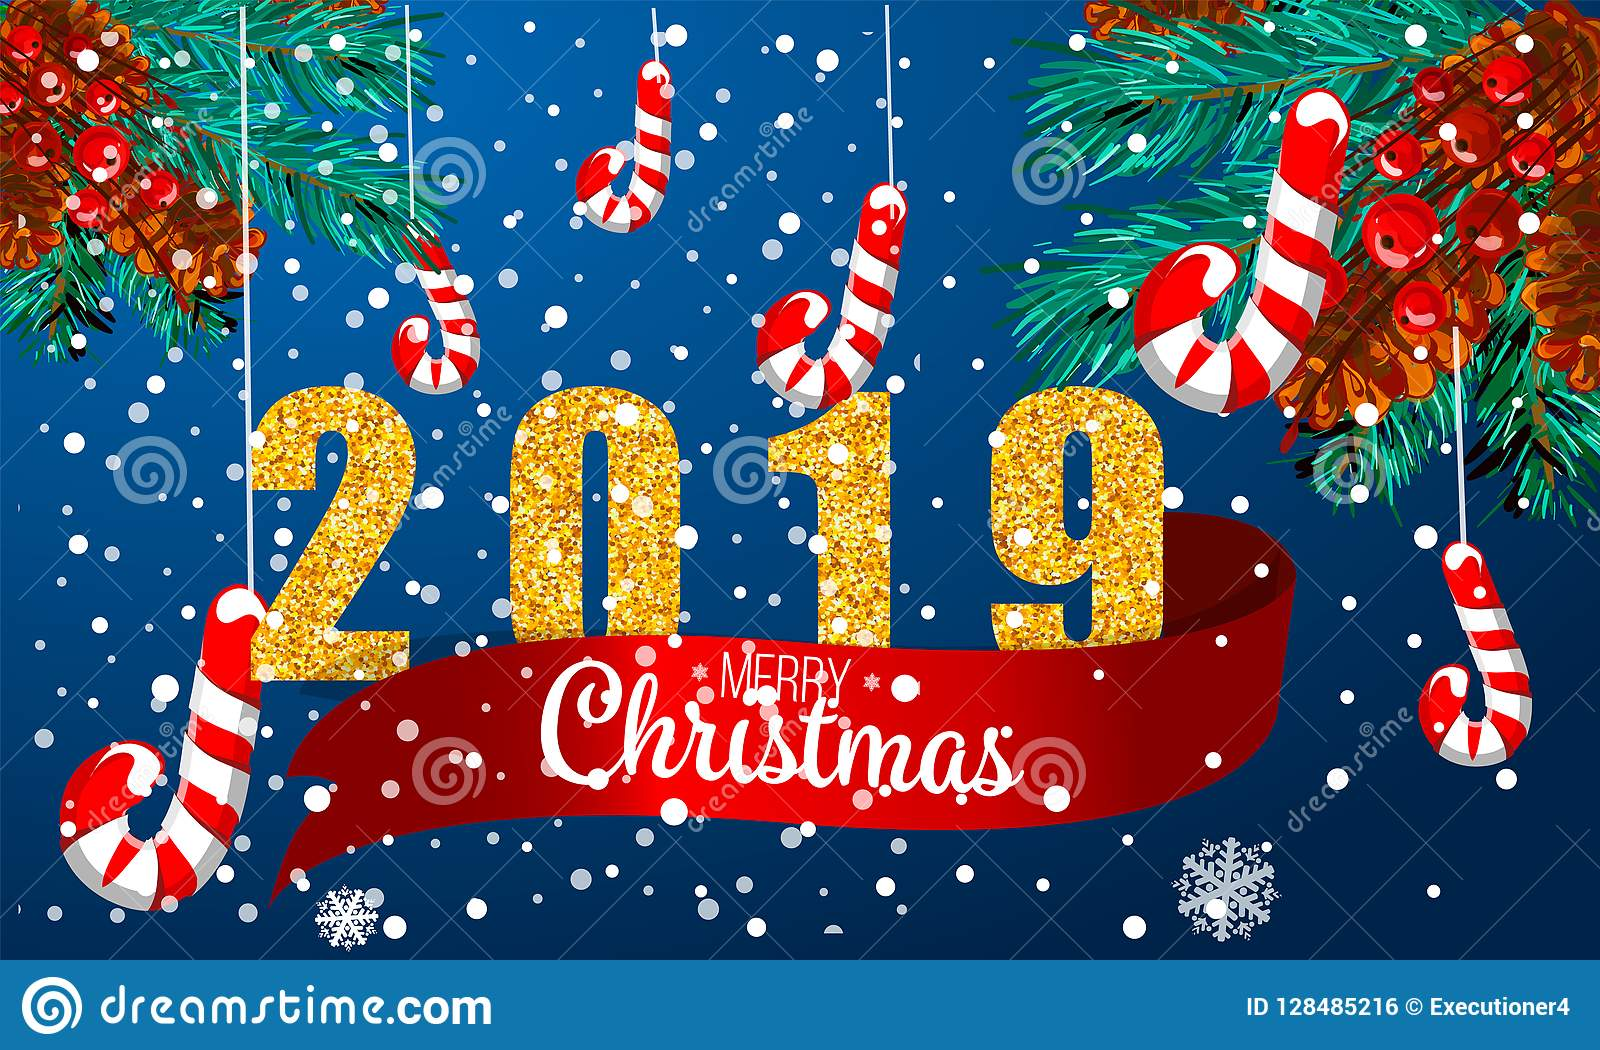 Christmas Graphics 2019.Christmas Card With Fir Branches 2019 Red Ribbon And Snow